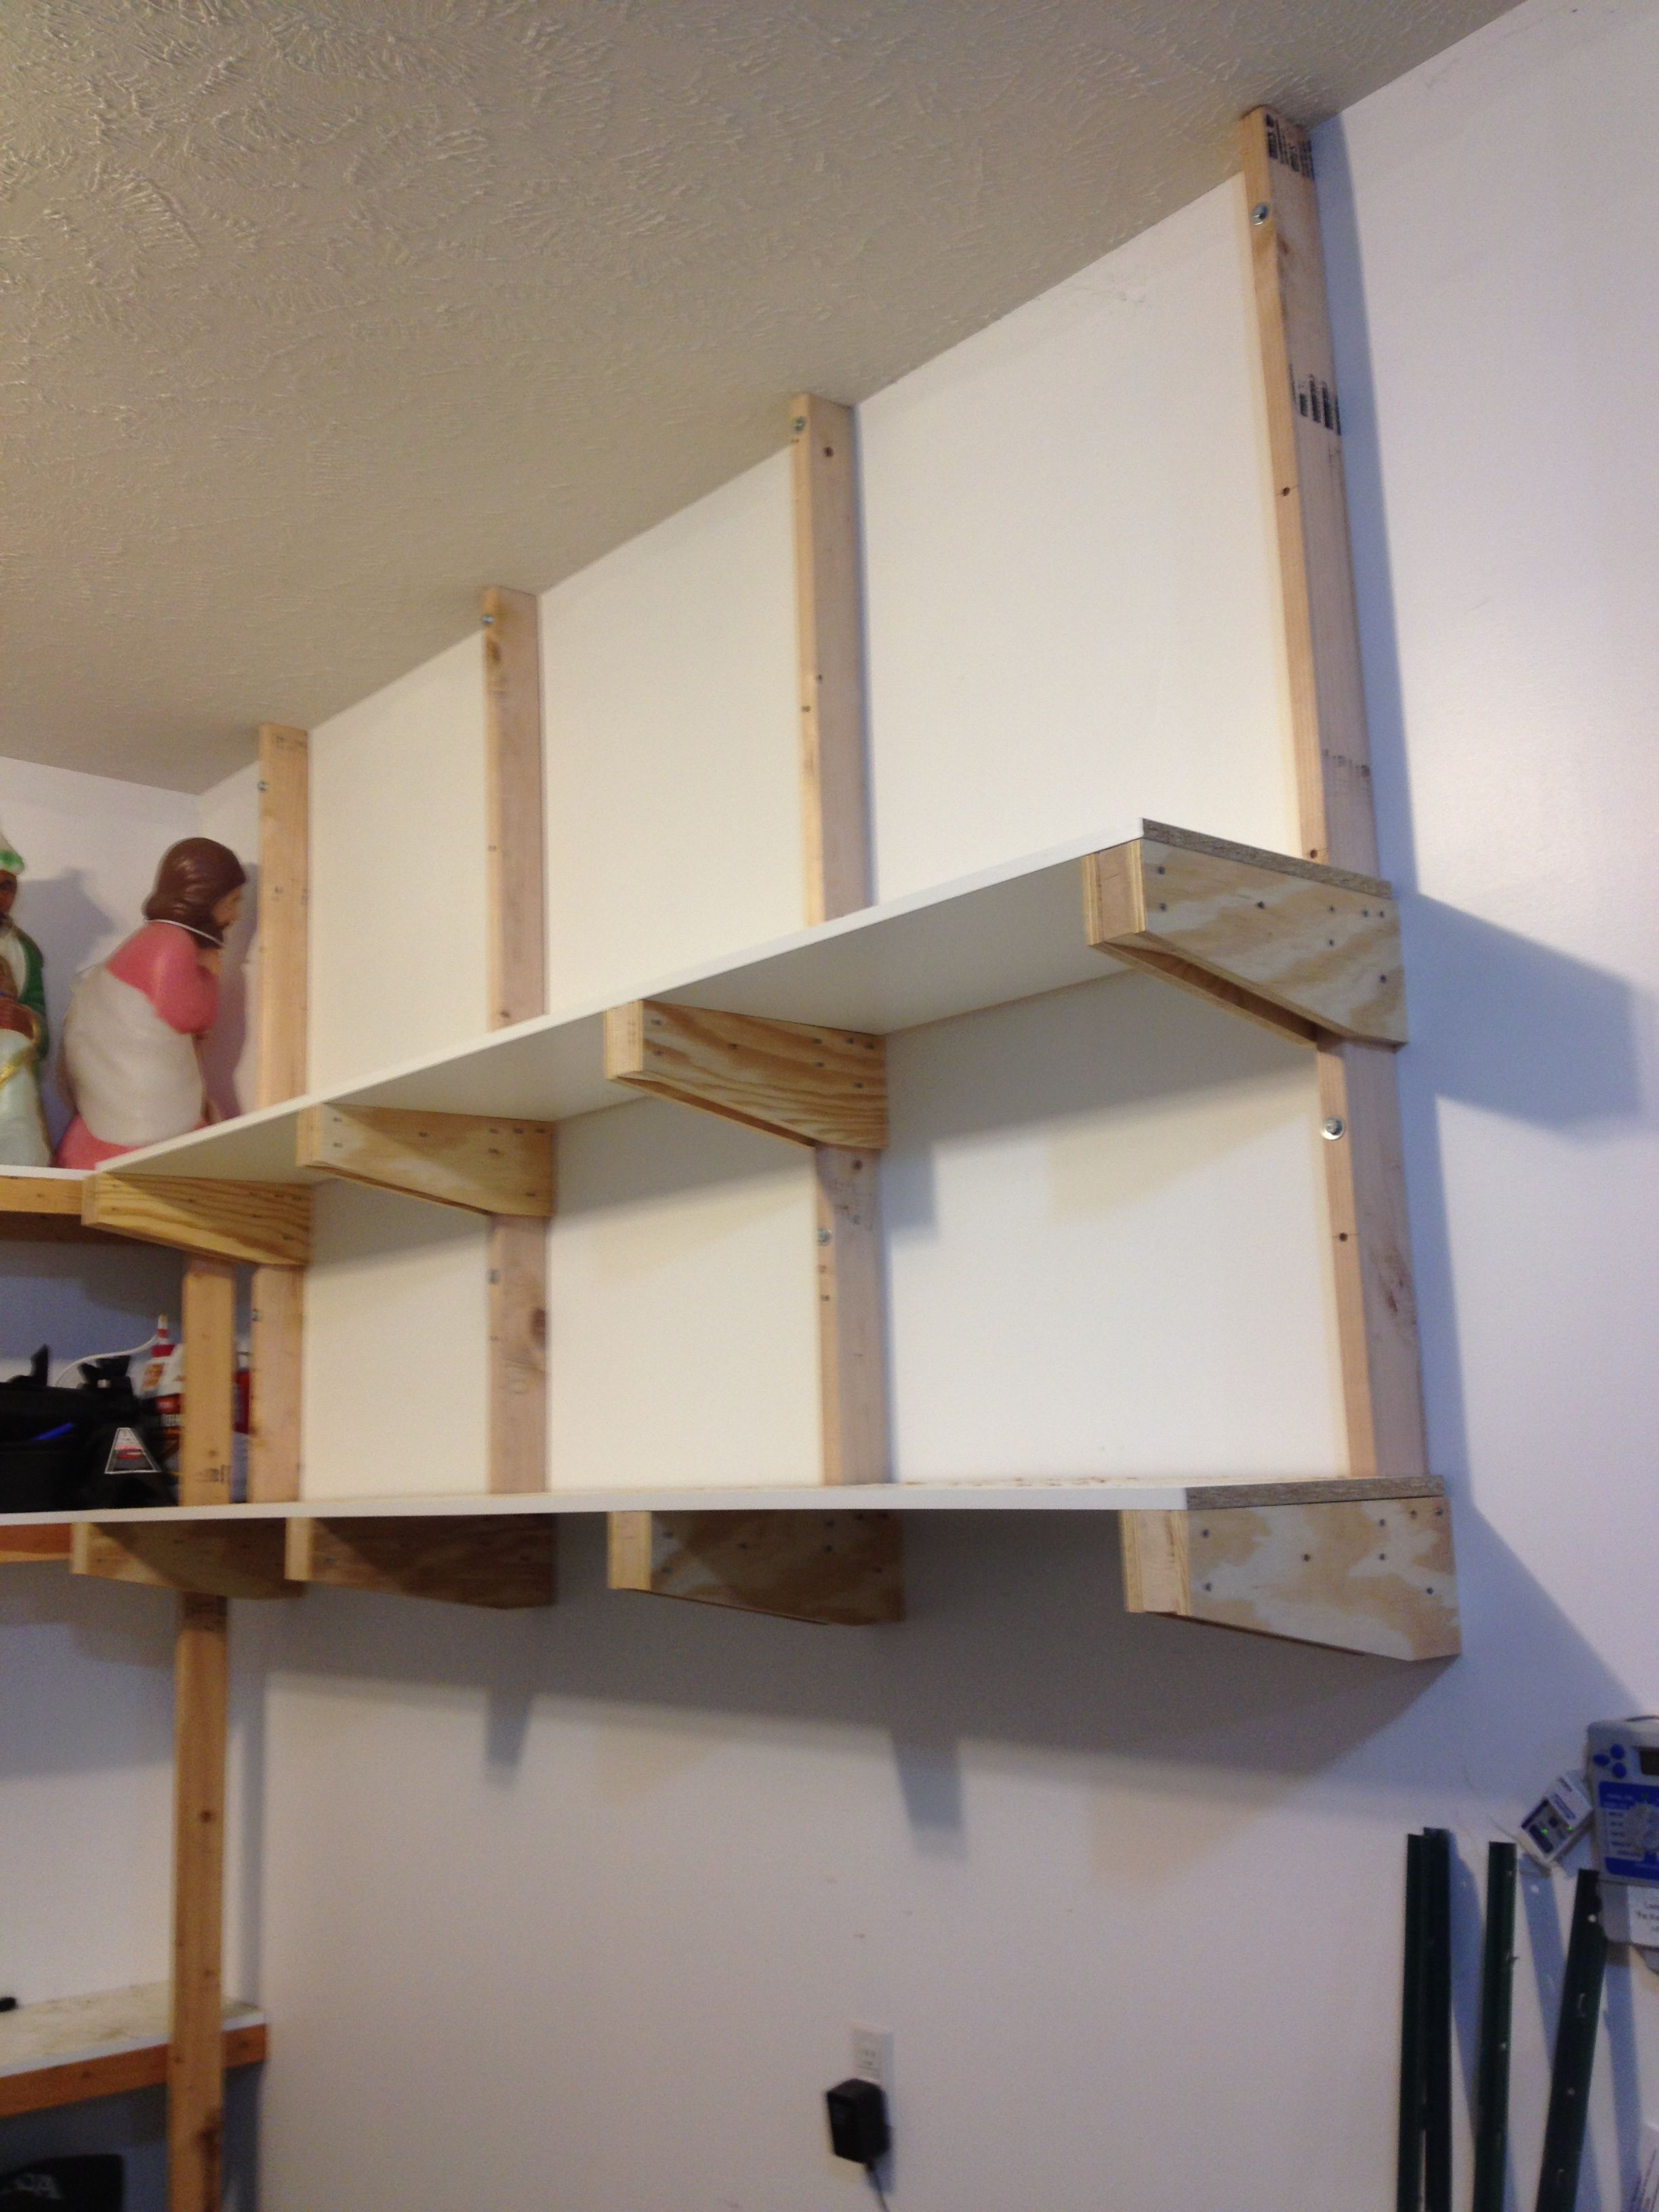 Diy Garage Shelves For Your Inspiration | Garage storage shelves, Diy ...